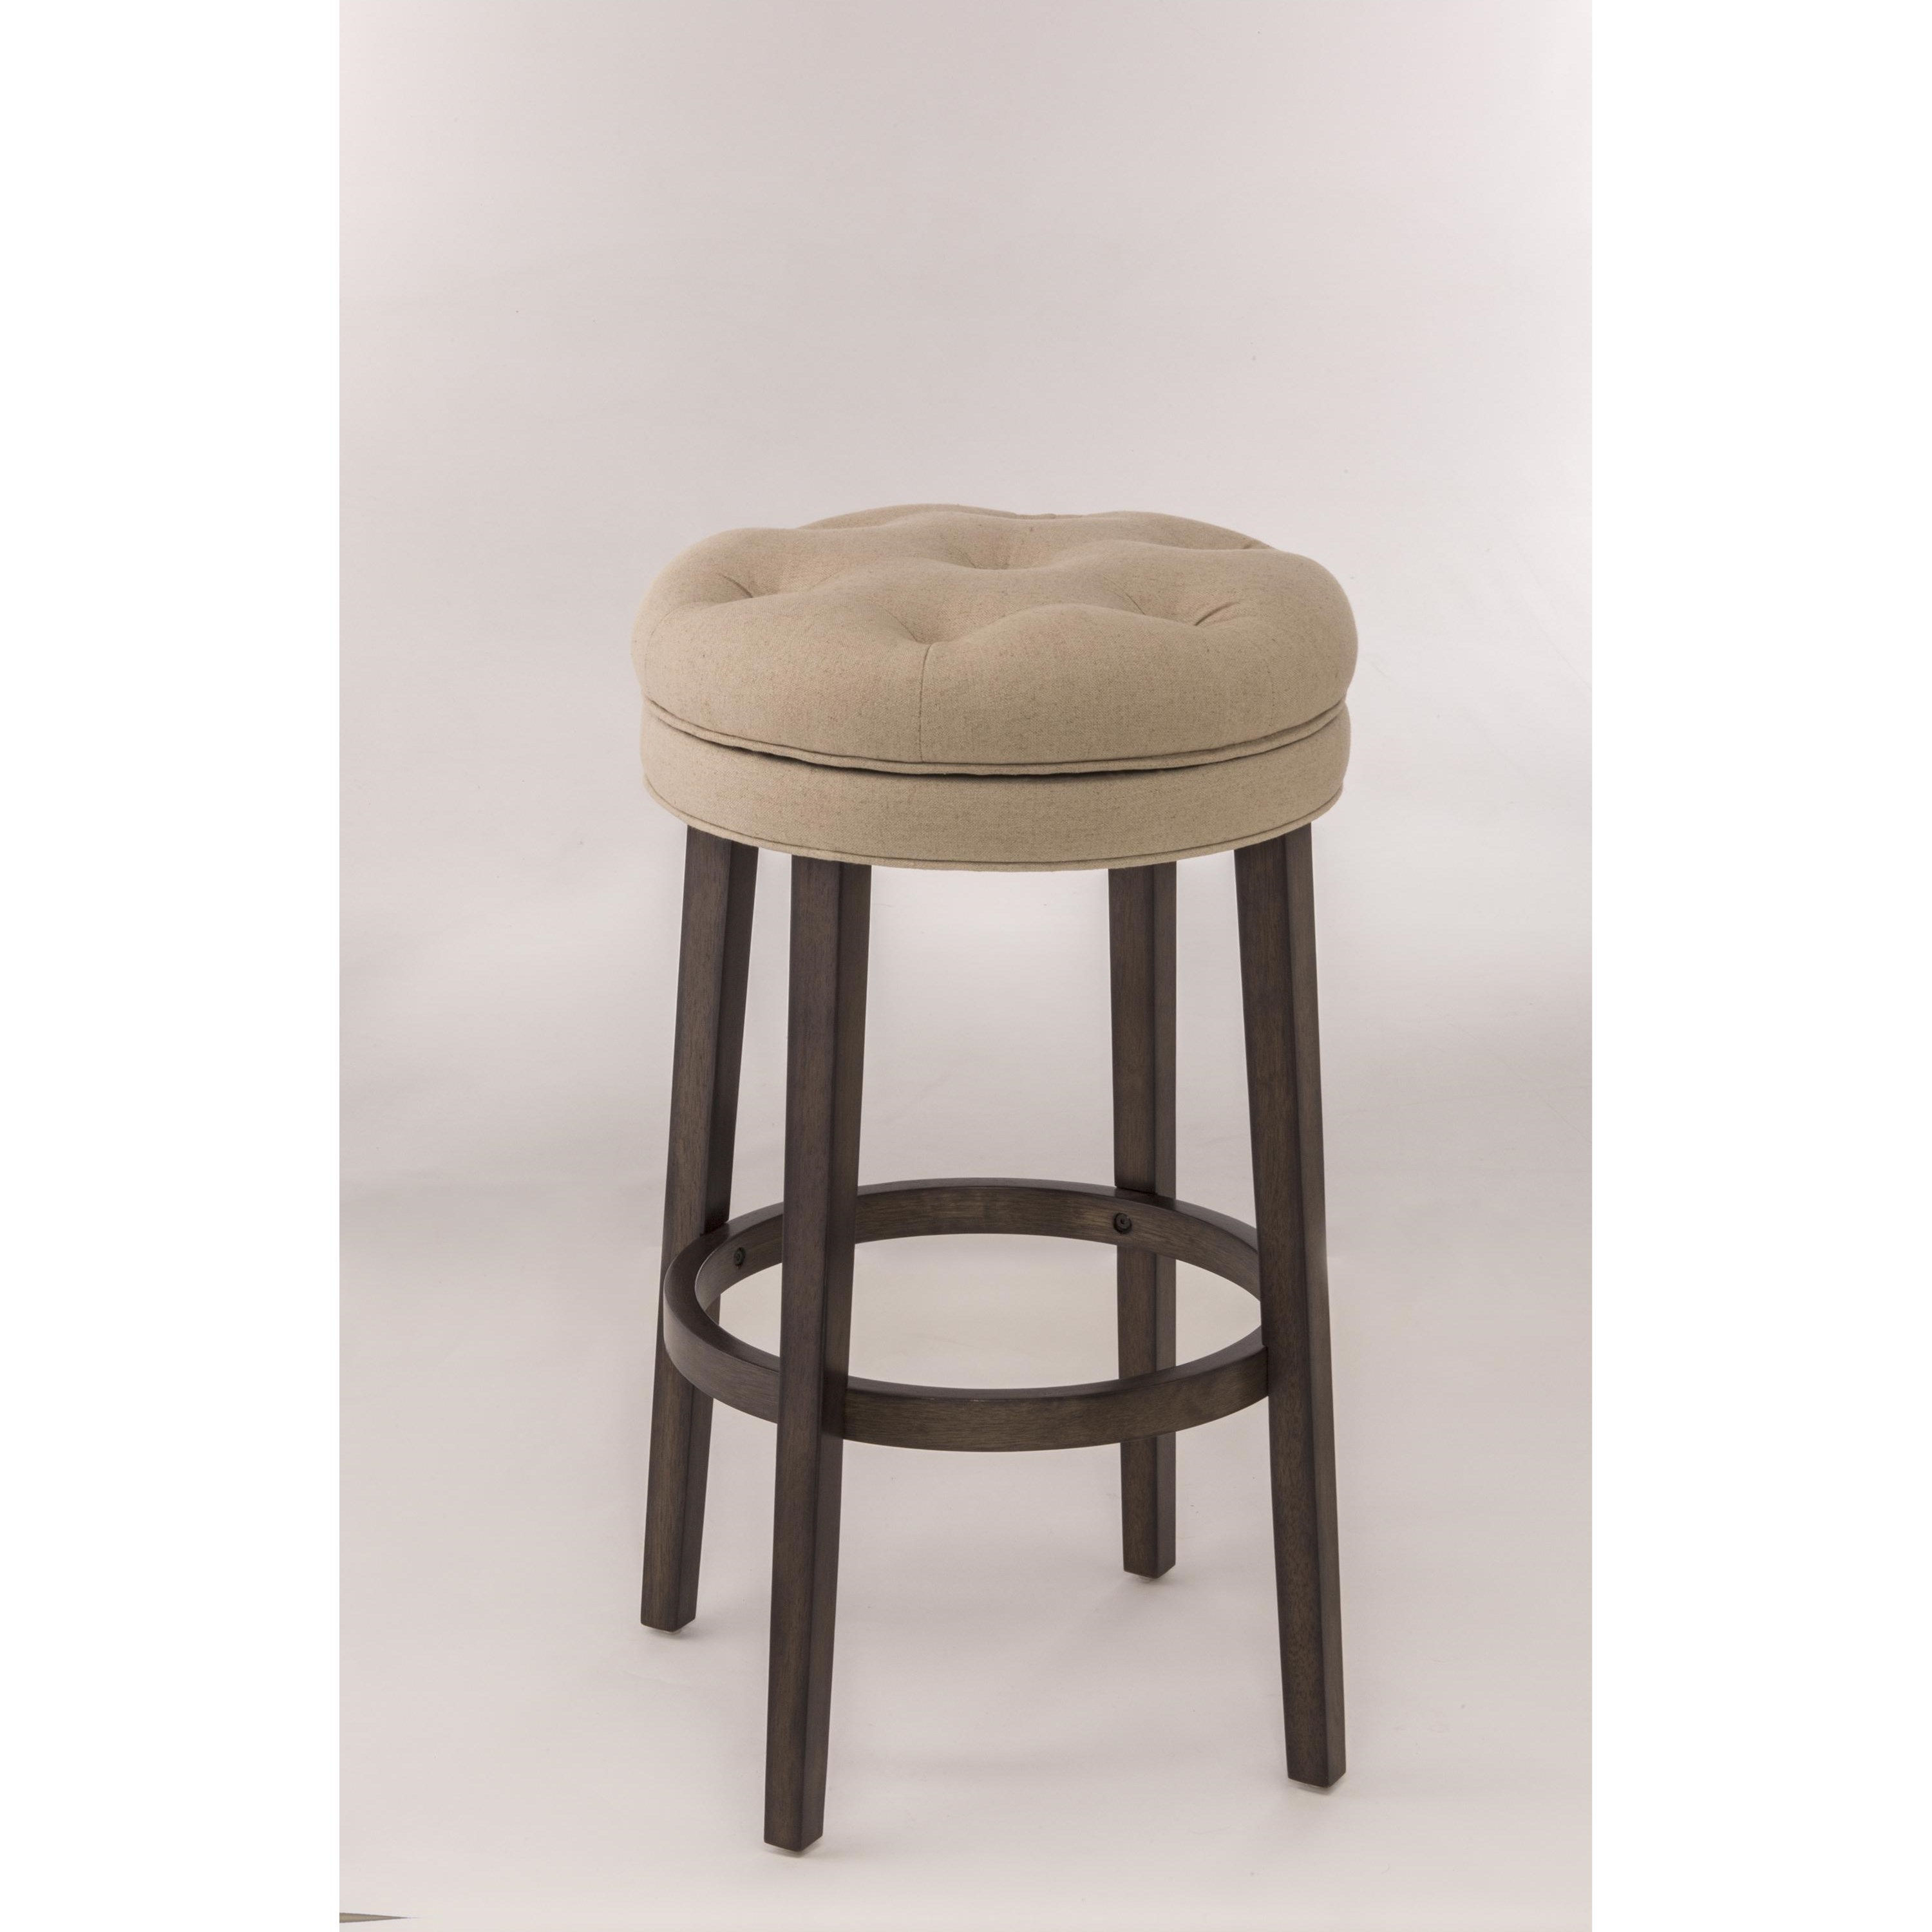 backless chair height stool queen anne style hillsdale bar stools swivel counter